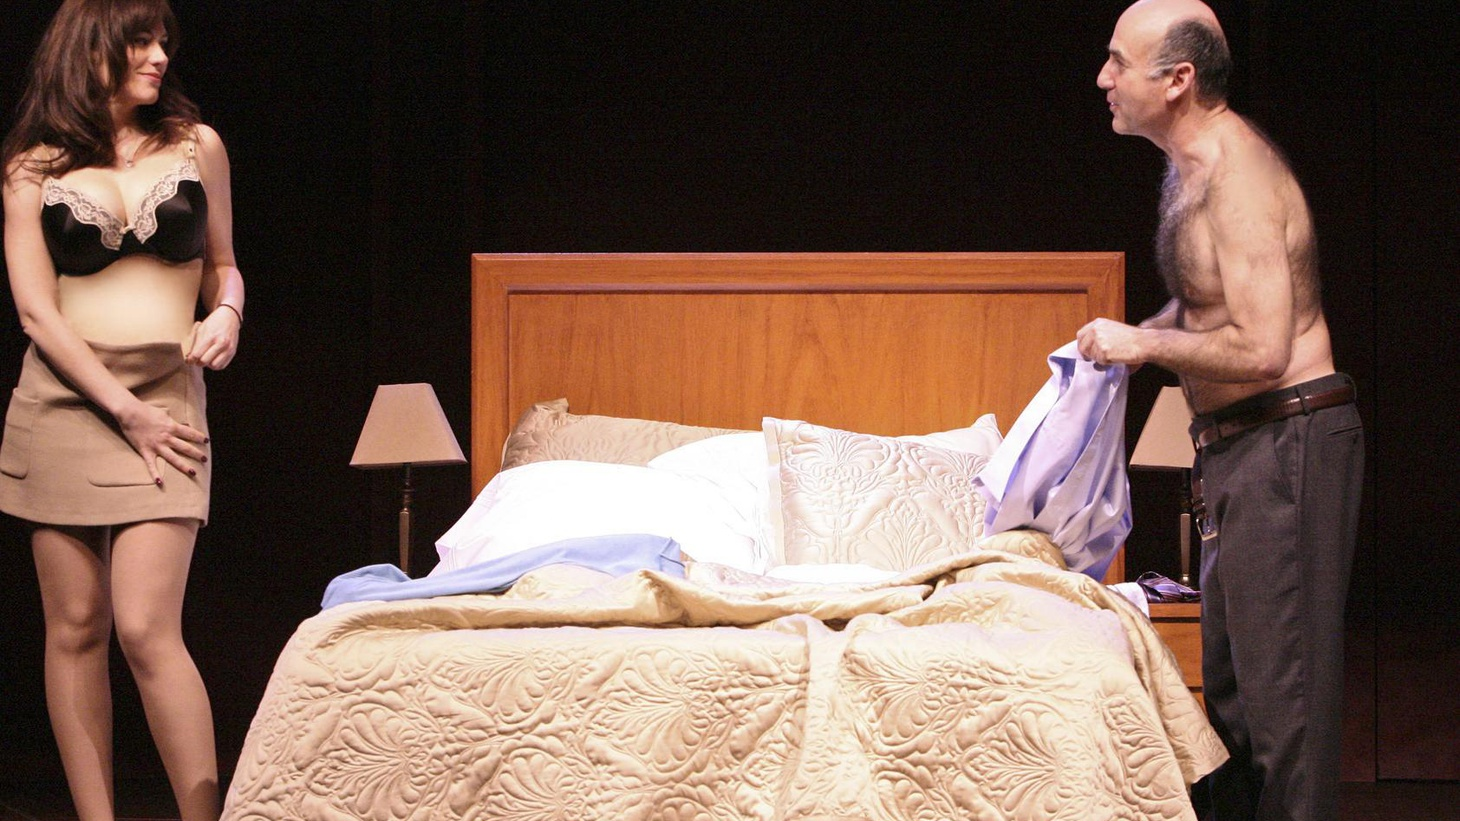 You sit down to see Jane Anderson's new play The Escort. The lights go down, a luscious red curtain opens and there is a beautiful, buxom naked woman center stage...